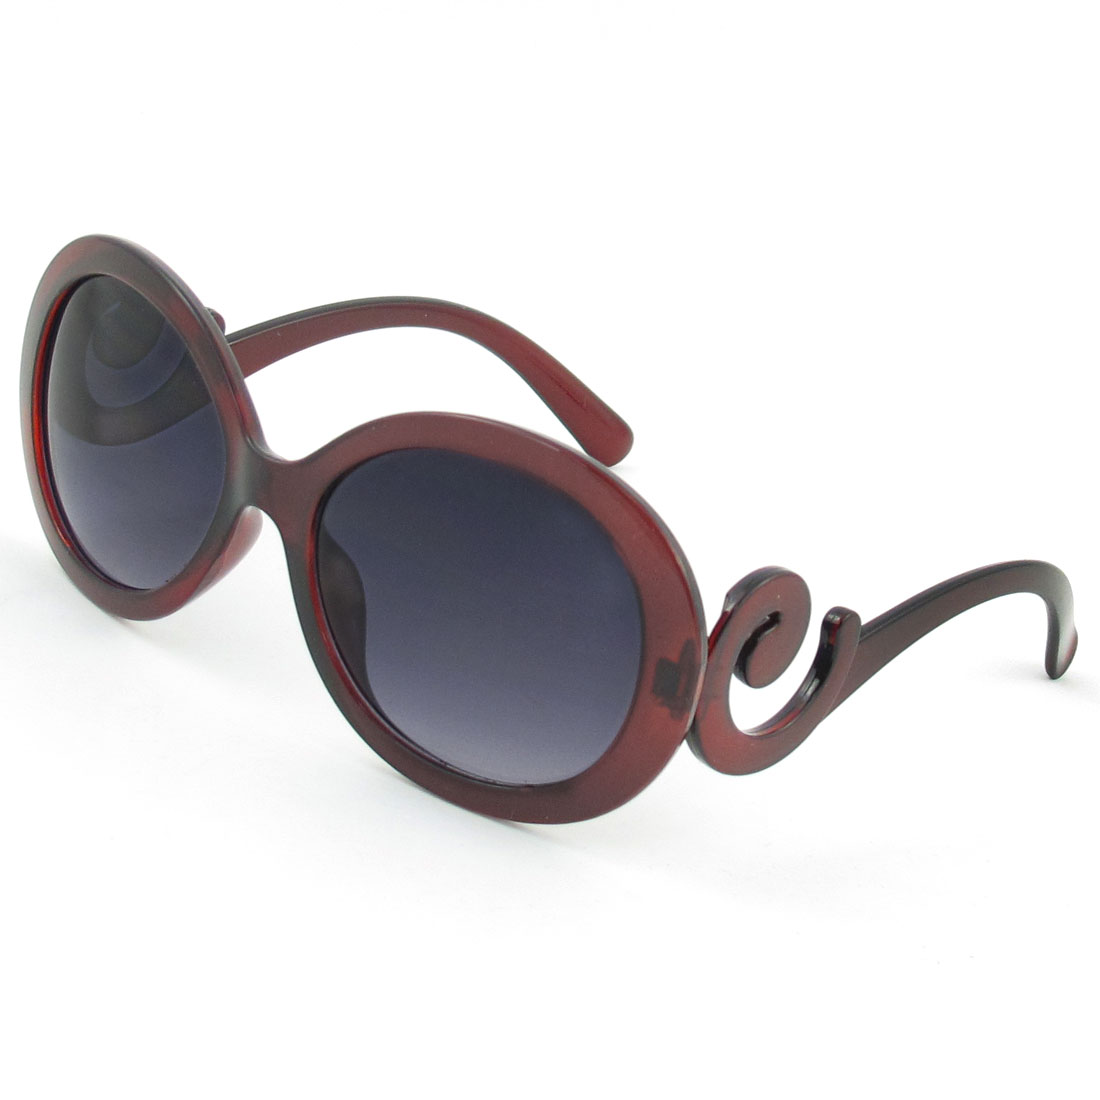 Burgundy Plastic Full Frame Swirl Temple Wide Arms Sunglasses for Woman